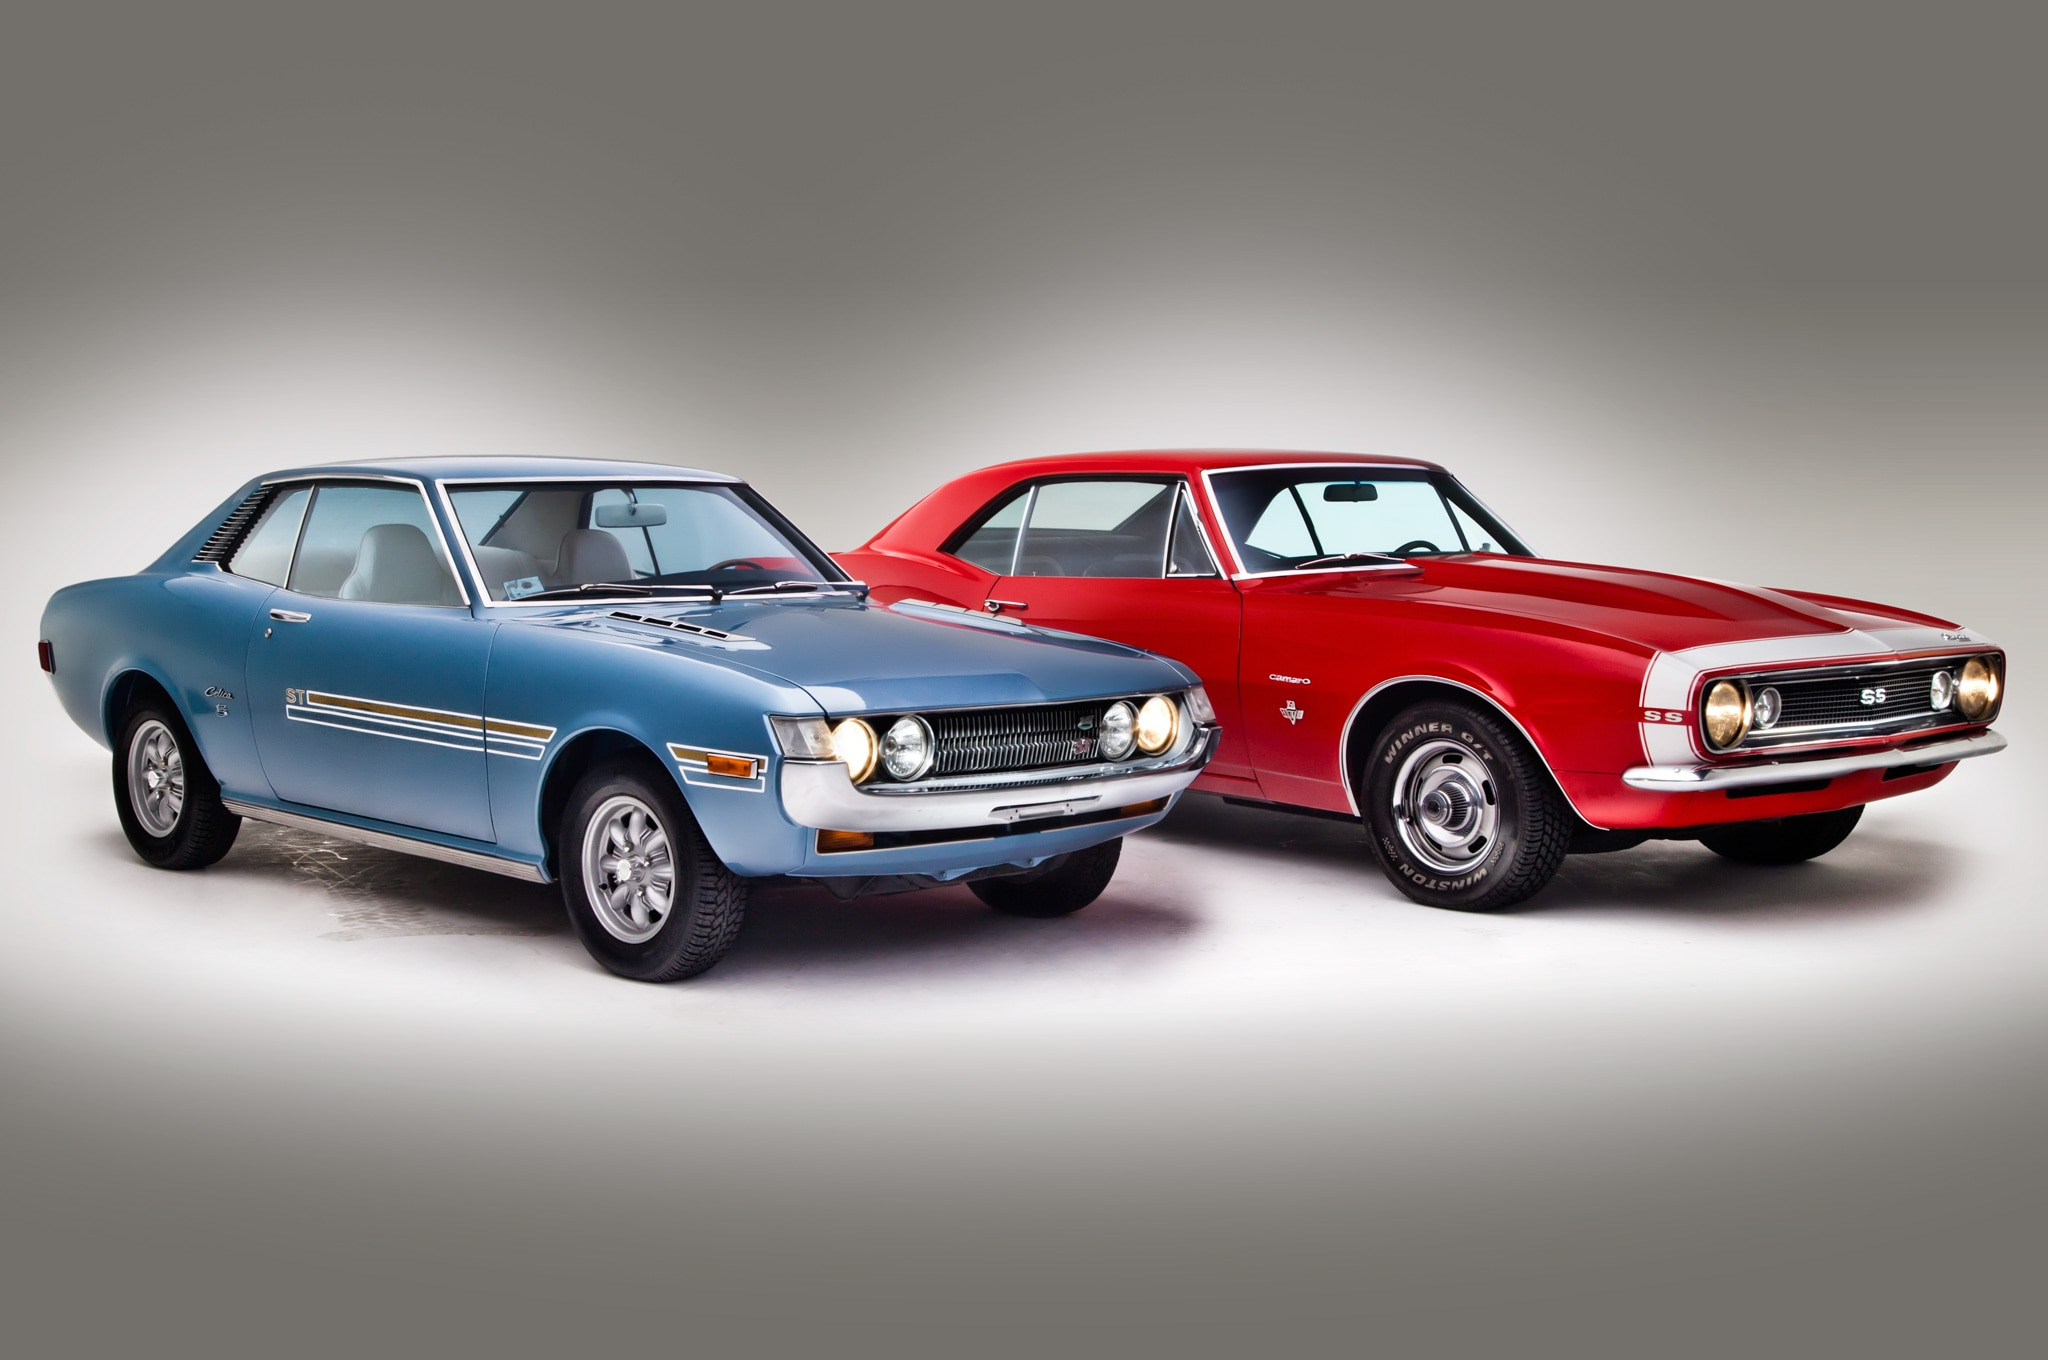 1971 Toyota Celica ST And 1967 Chevrolet Camaro SS Front Three Quarters View1